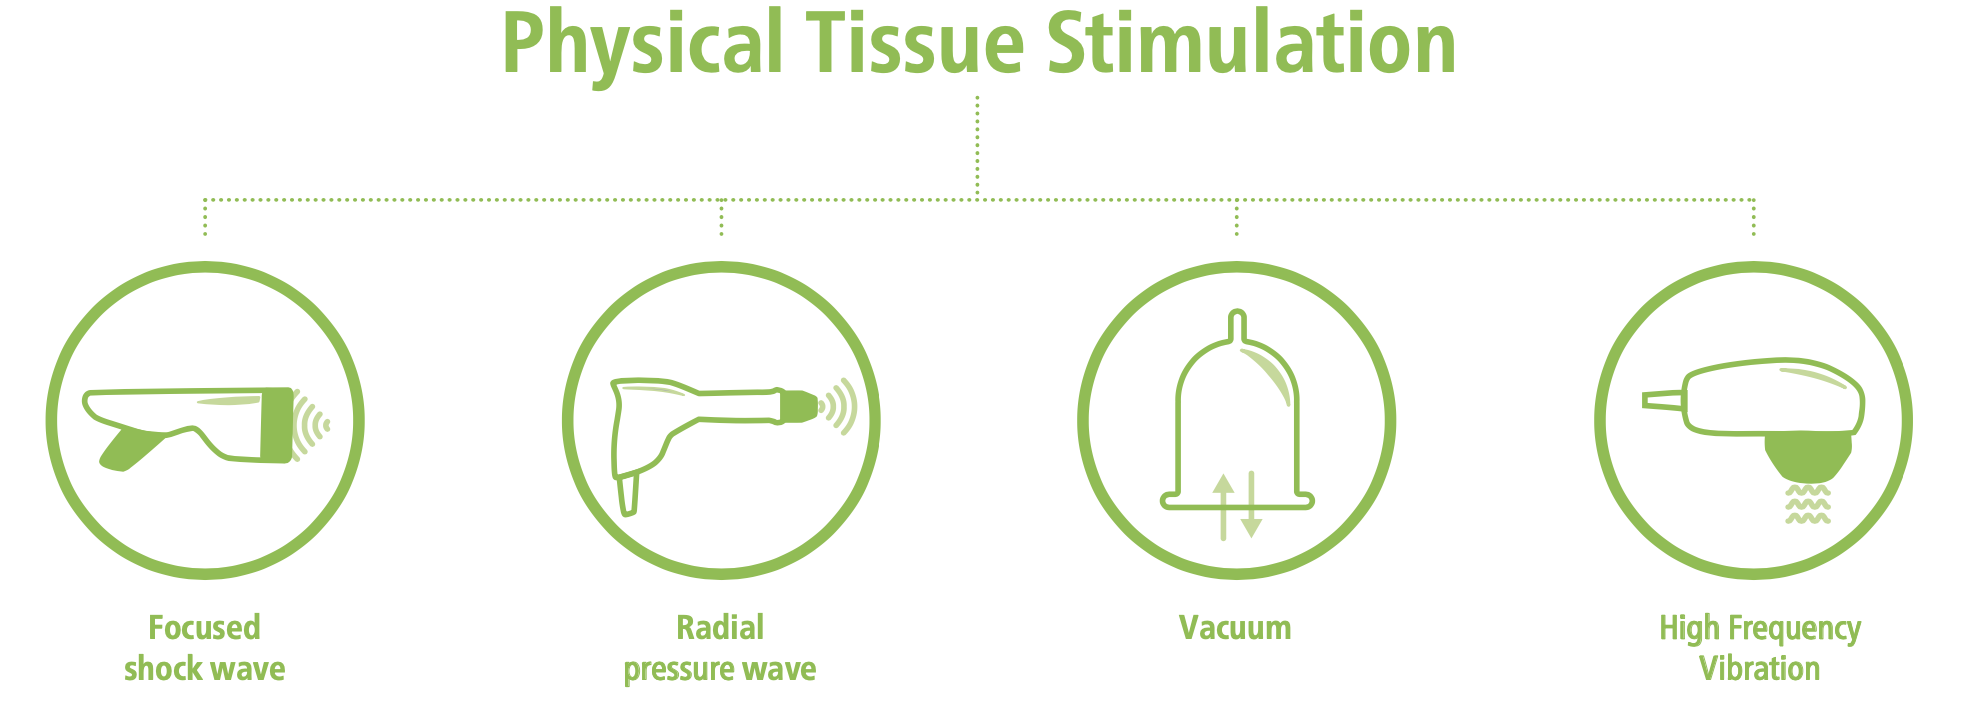 Physical-Tissue-Stimulation